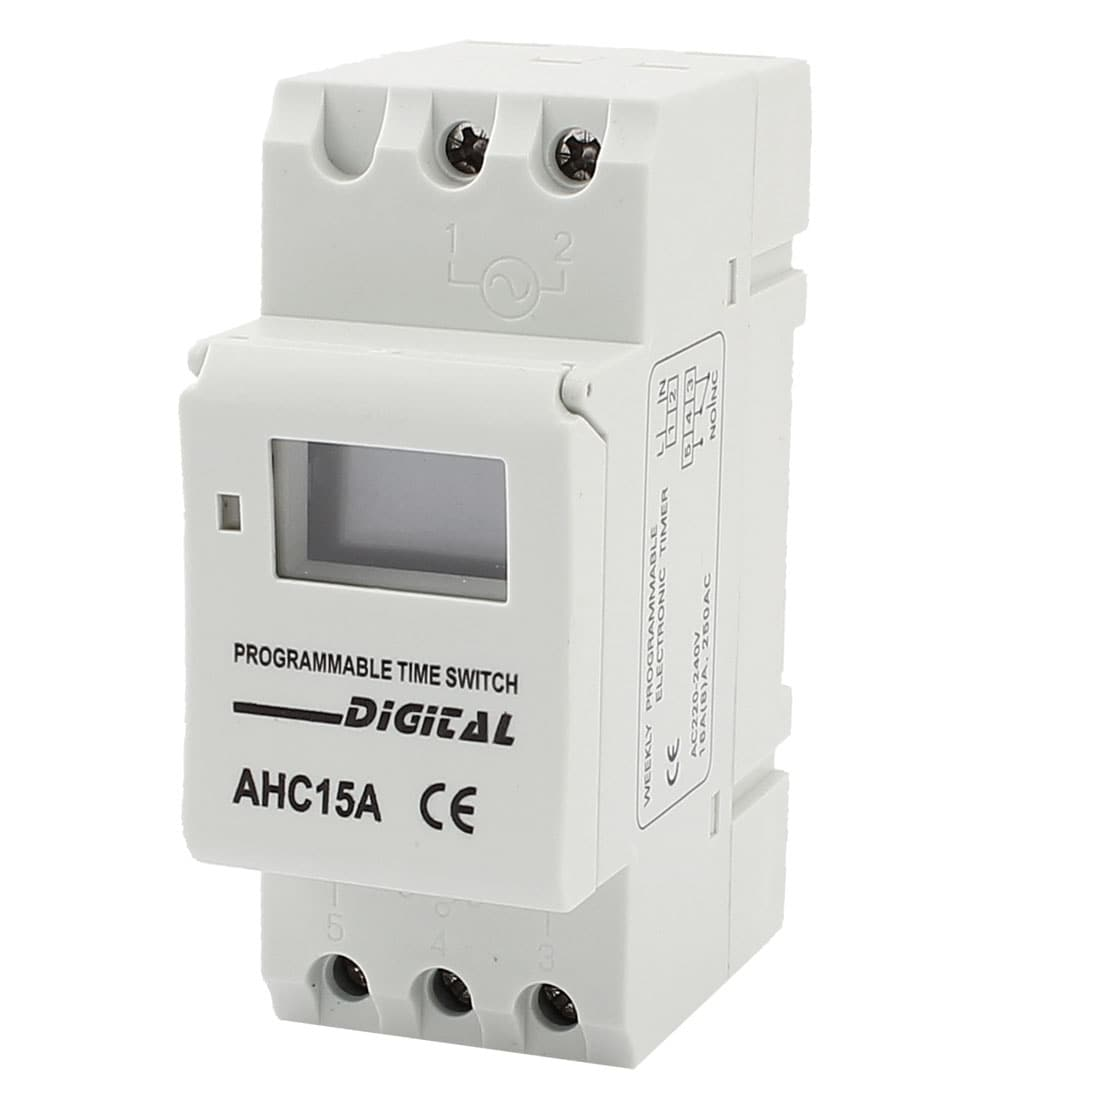 Shop Ahc15a Ac 220v Digital Lcd Power Weekly Programmable Timer Time Circuit Relay Switch Free Shipping On Orders Over 45 18246988